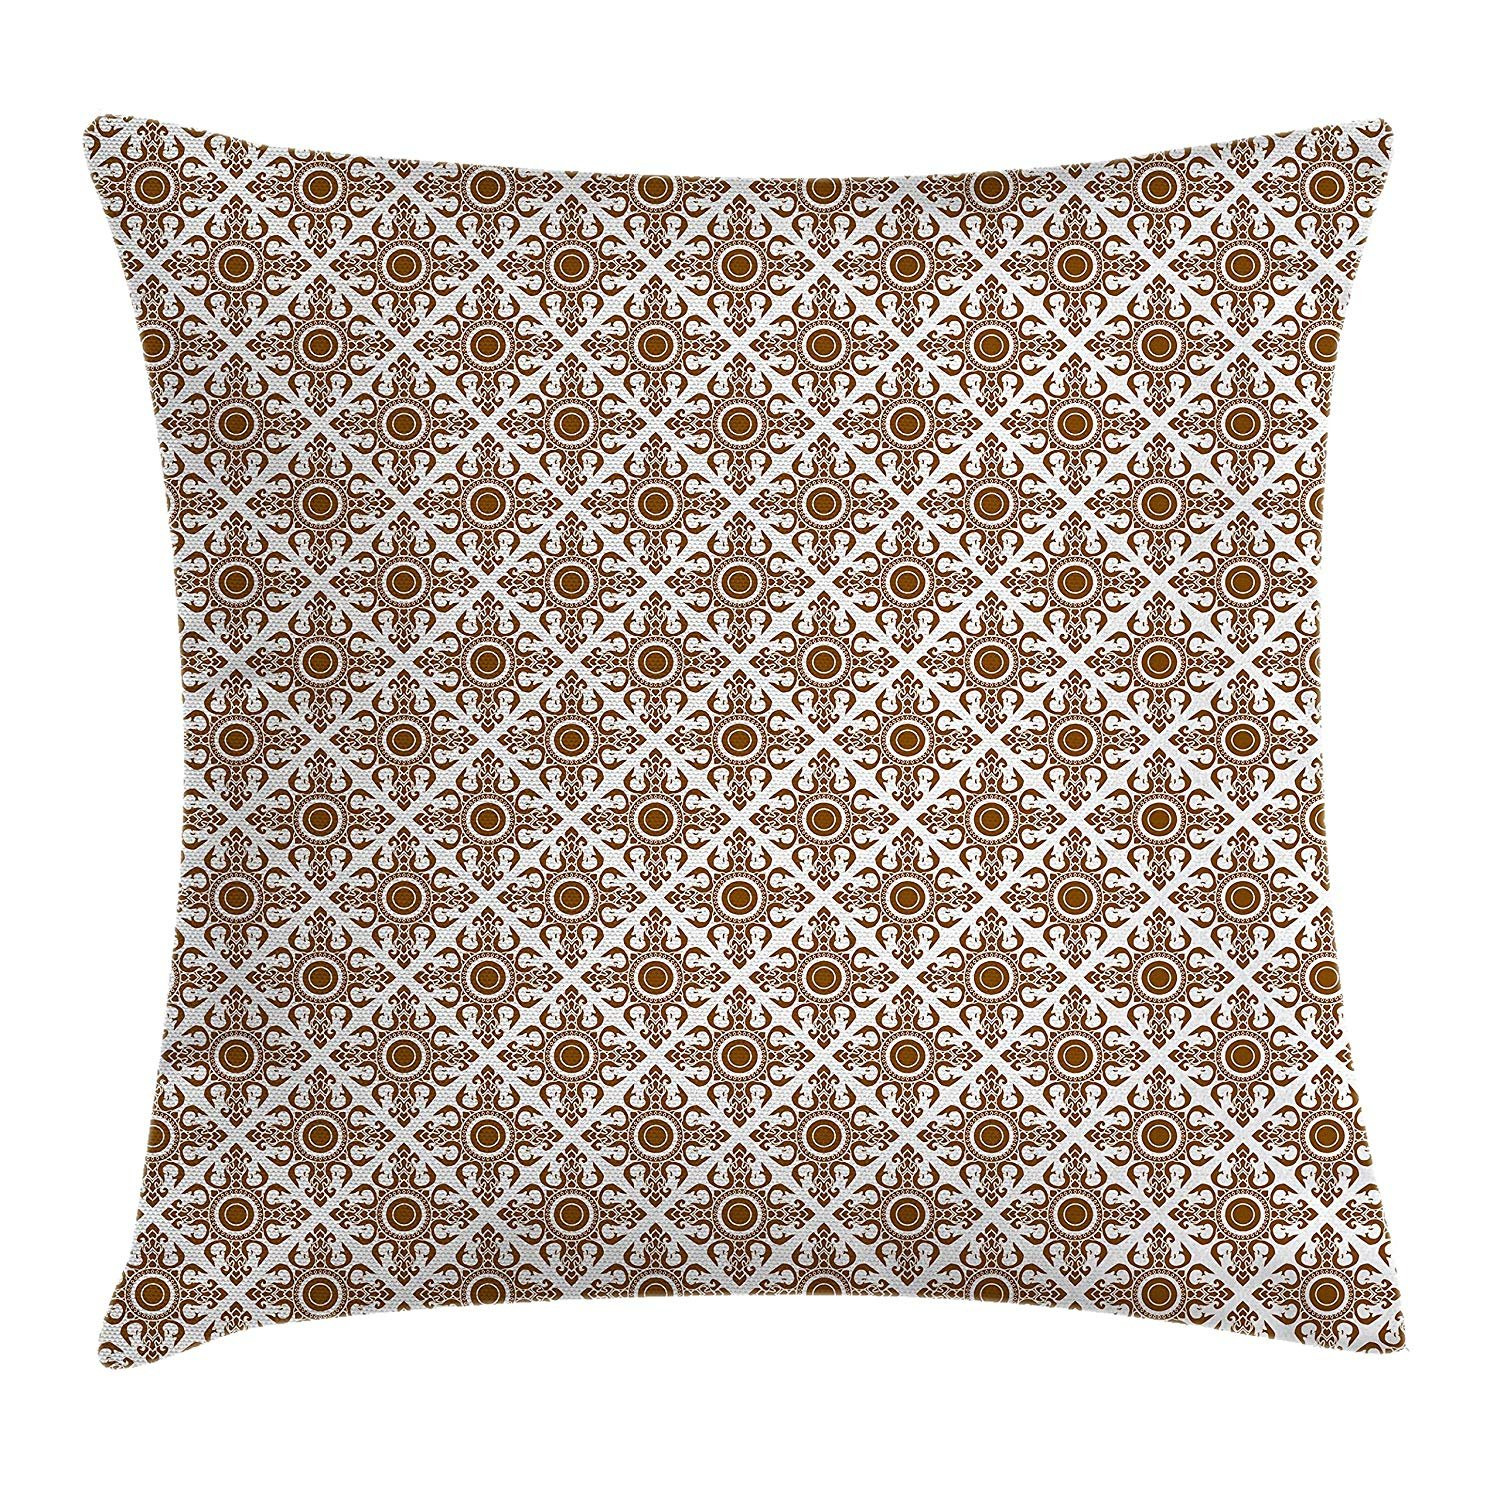 Queen Area Ethnic Thai Mosaic Culture Stylized Abstract Lines Dots Pattern Folk Asian Design Square Throw Pillow Covers Cushion Case for Sofa Bedroom Car 18x18 Inch, Redwood White by Queen Area